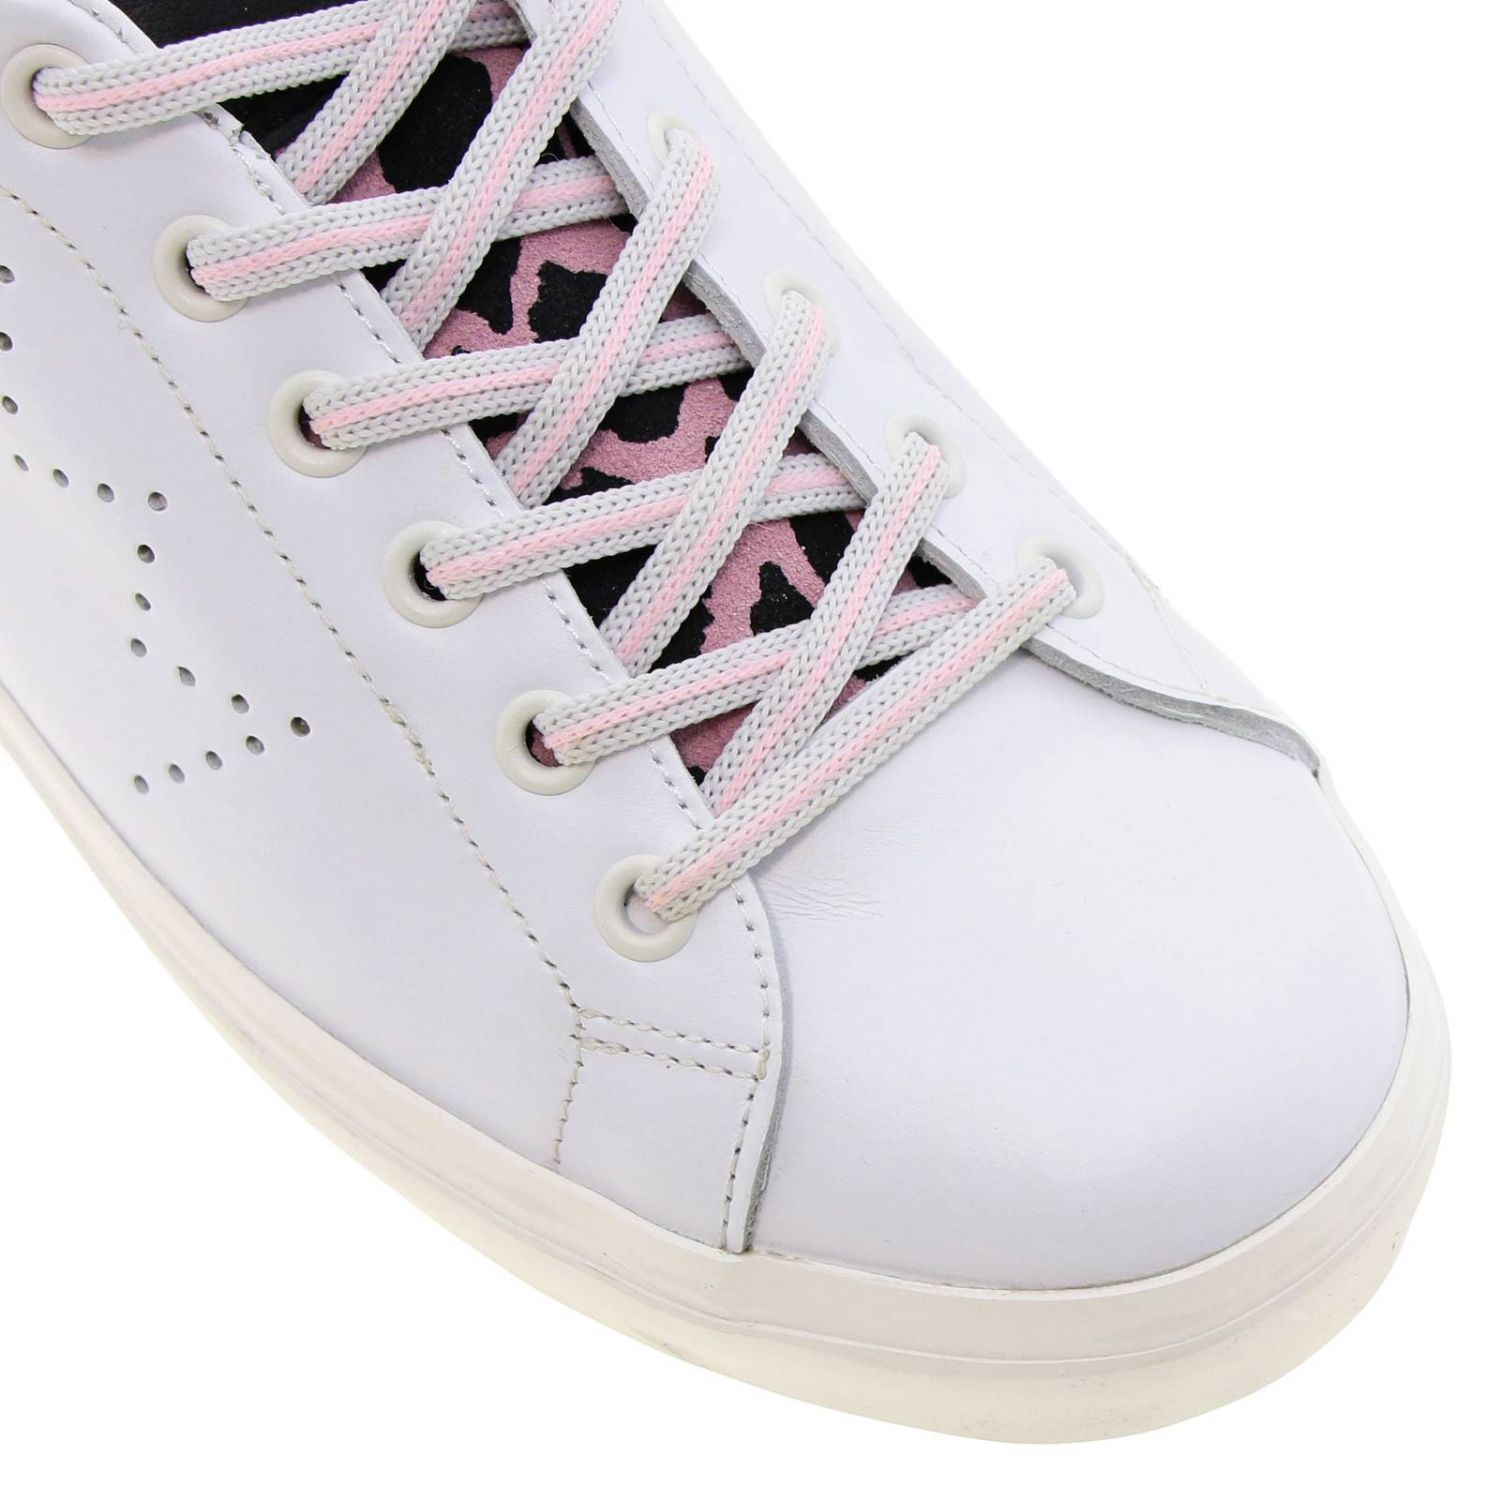 Shoes women Leather Crown pink 3